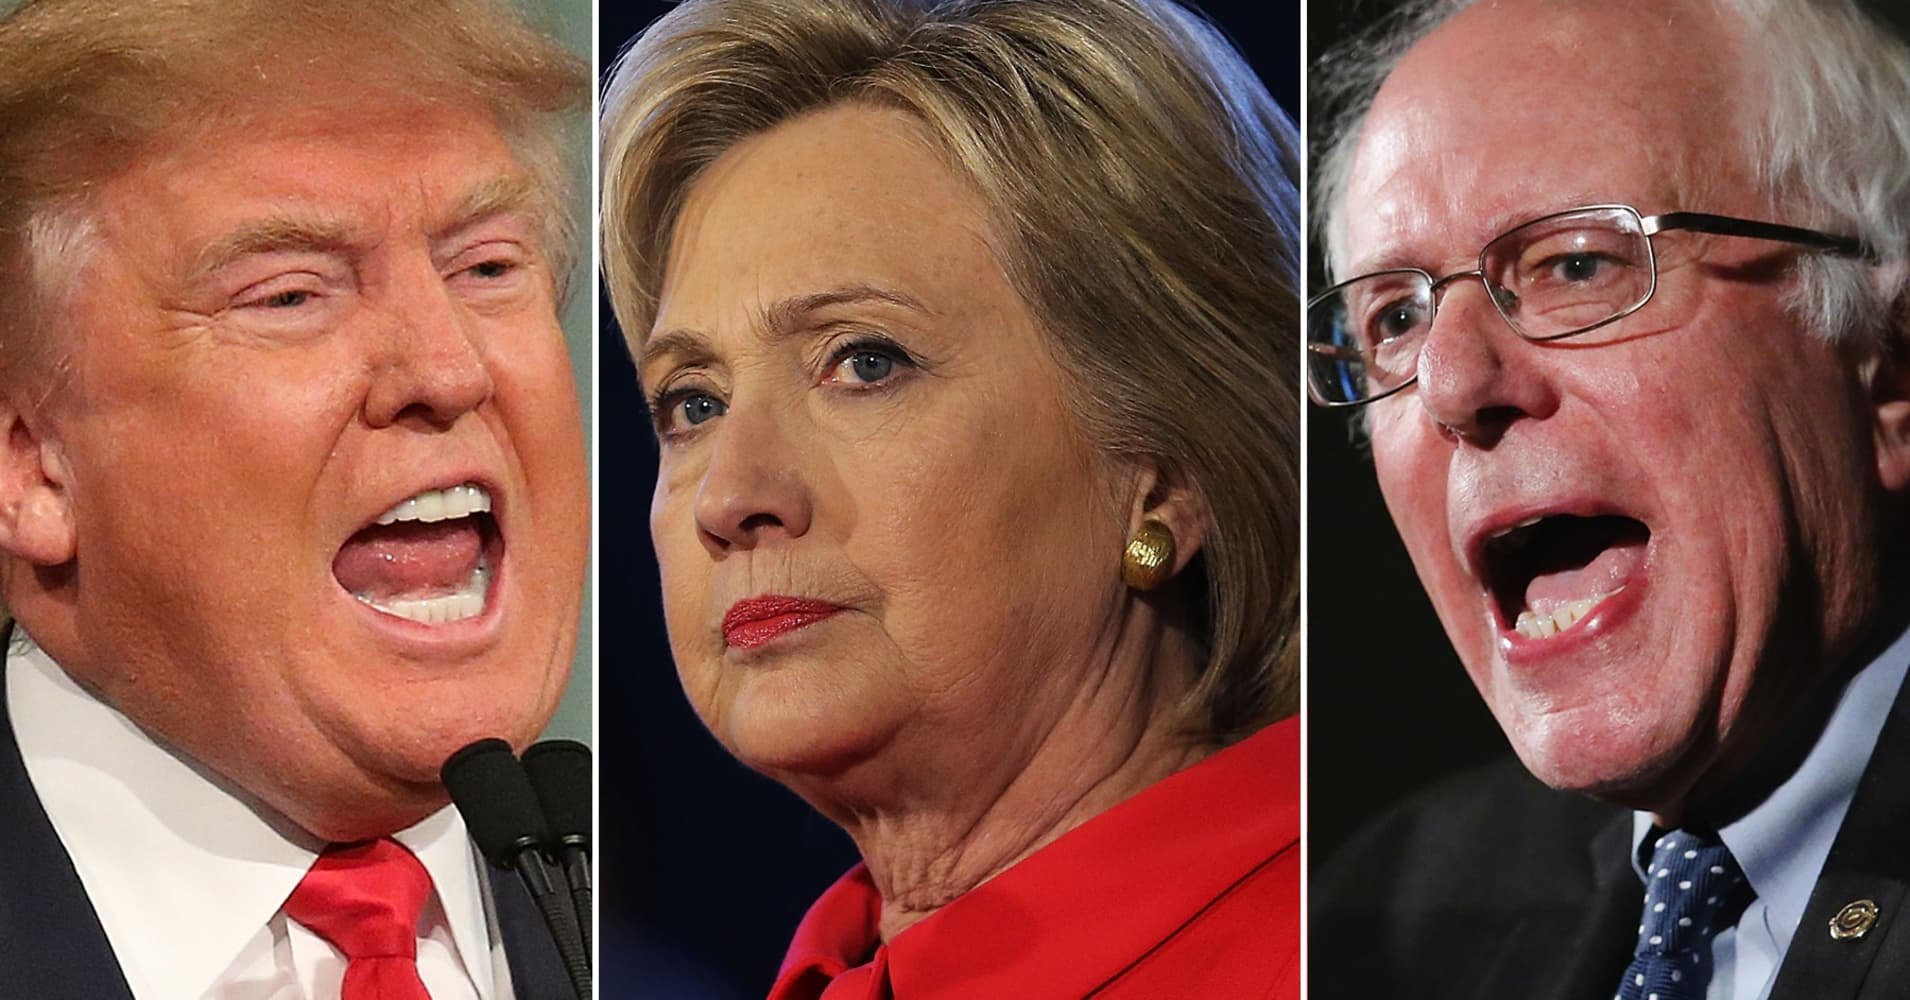 trump sanders debate would hillary clintons worst nigare commentary